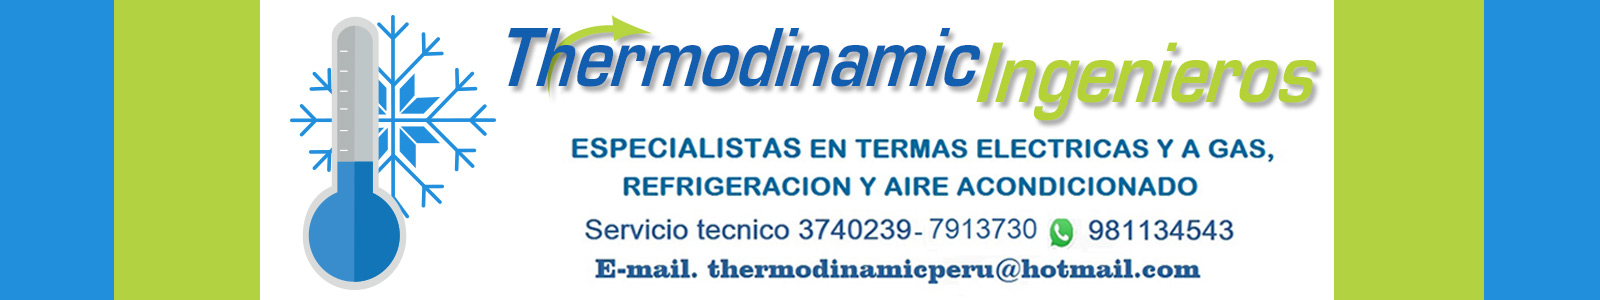 Thermodinamic Ingenieros logo